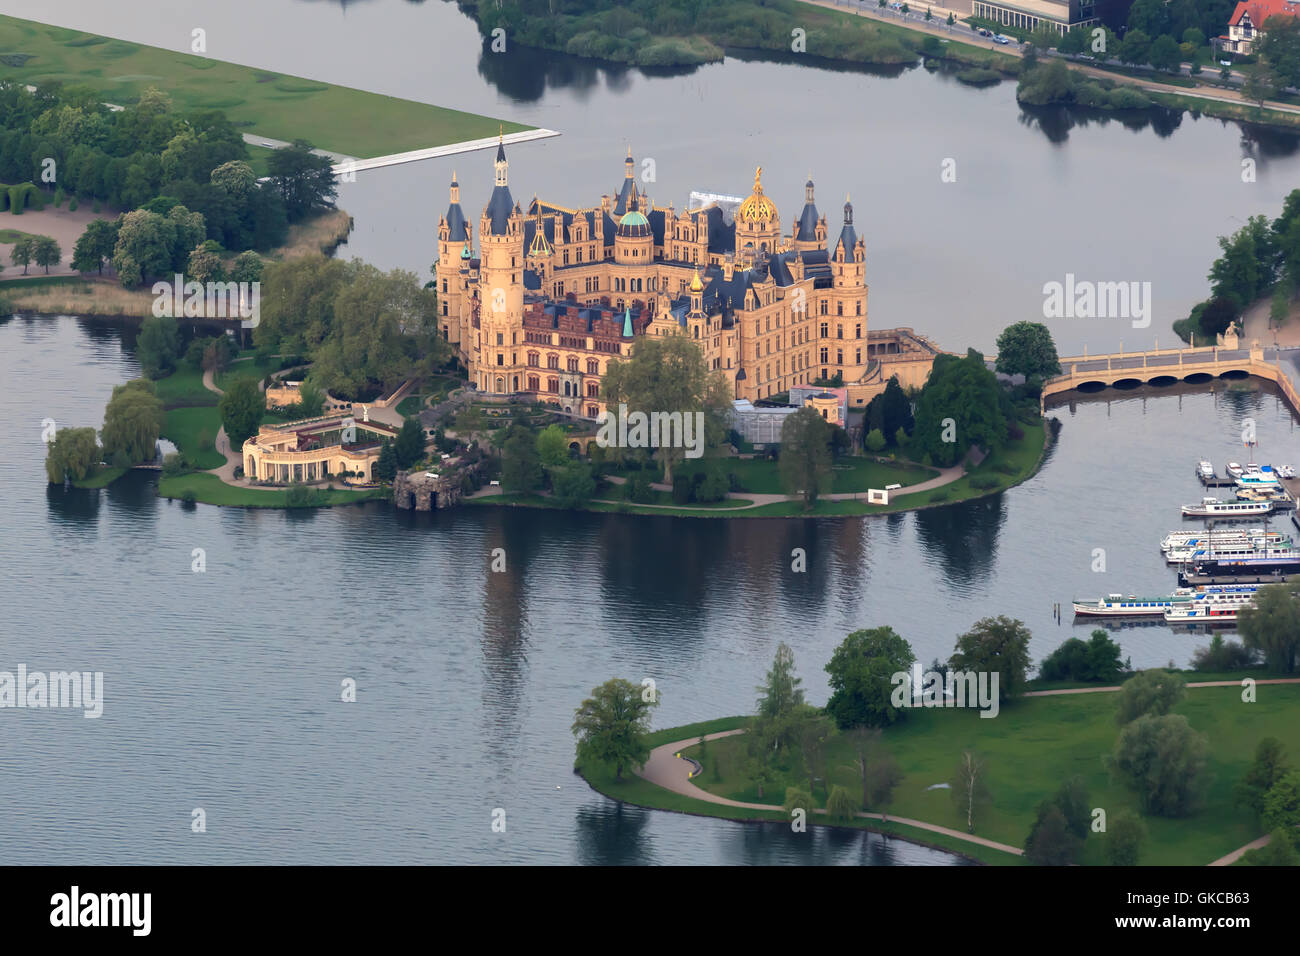 schwerin castle as aerial view from hot air balloon - Stock Image